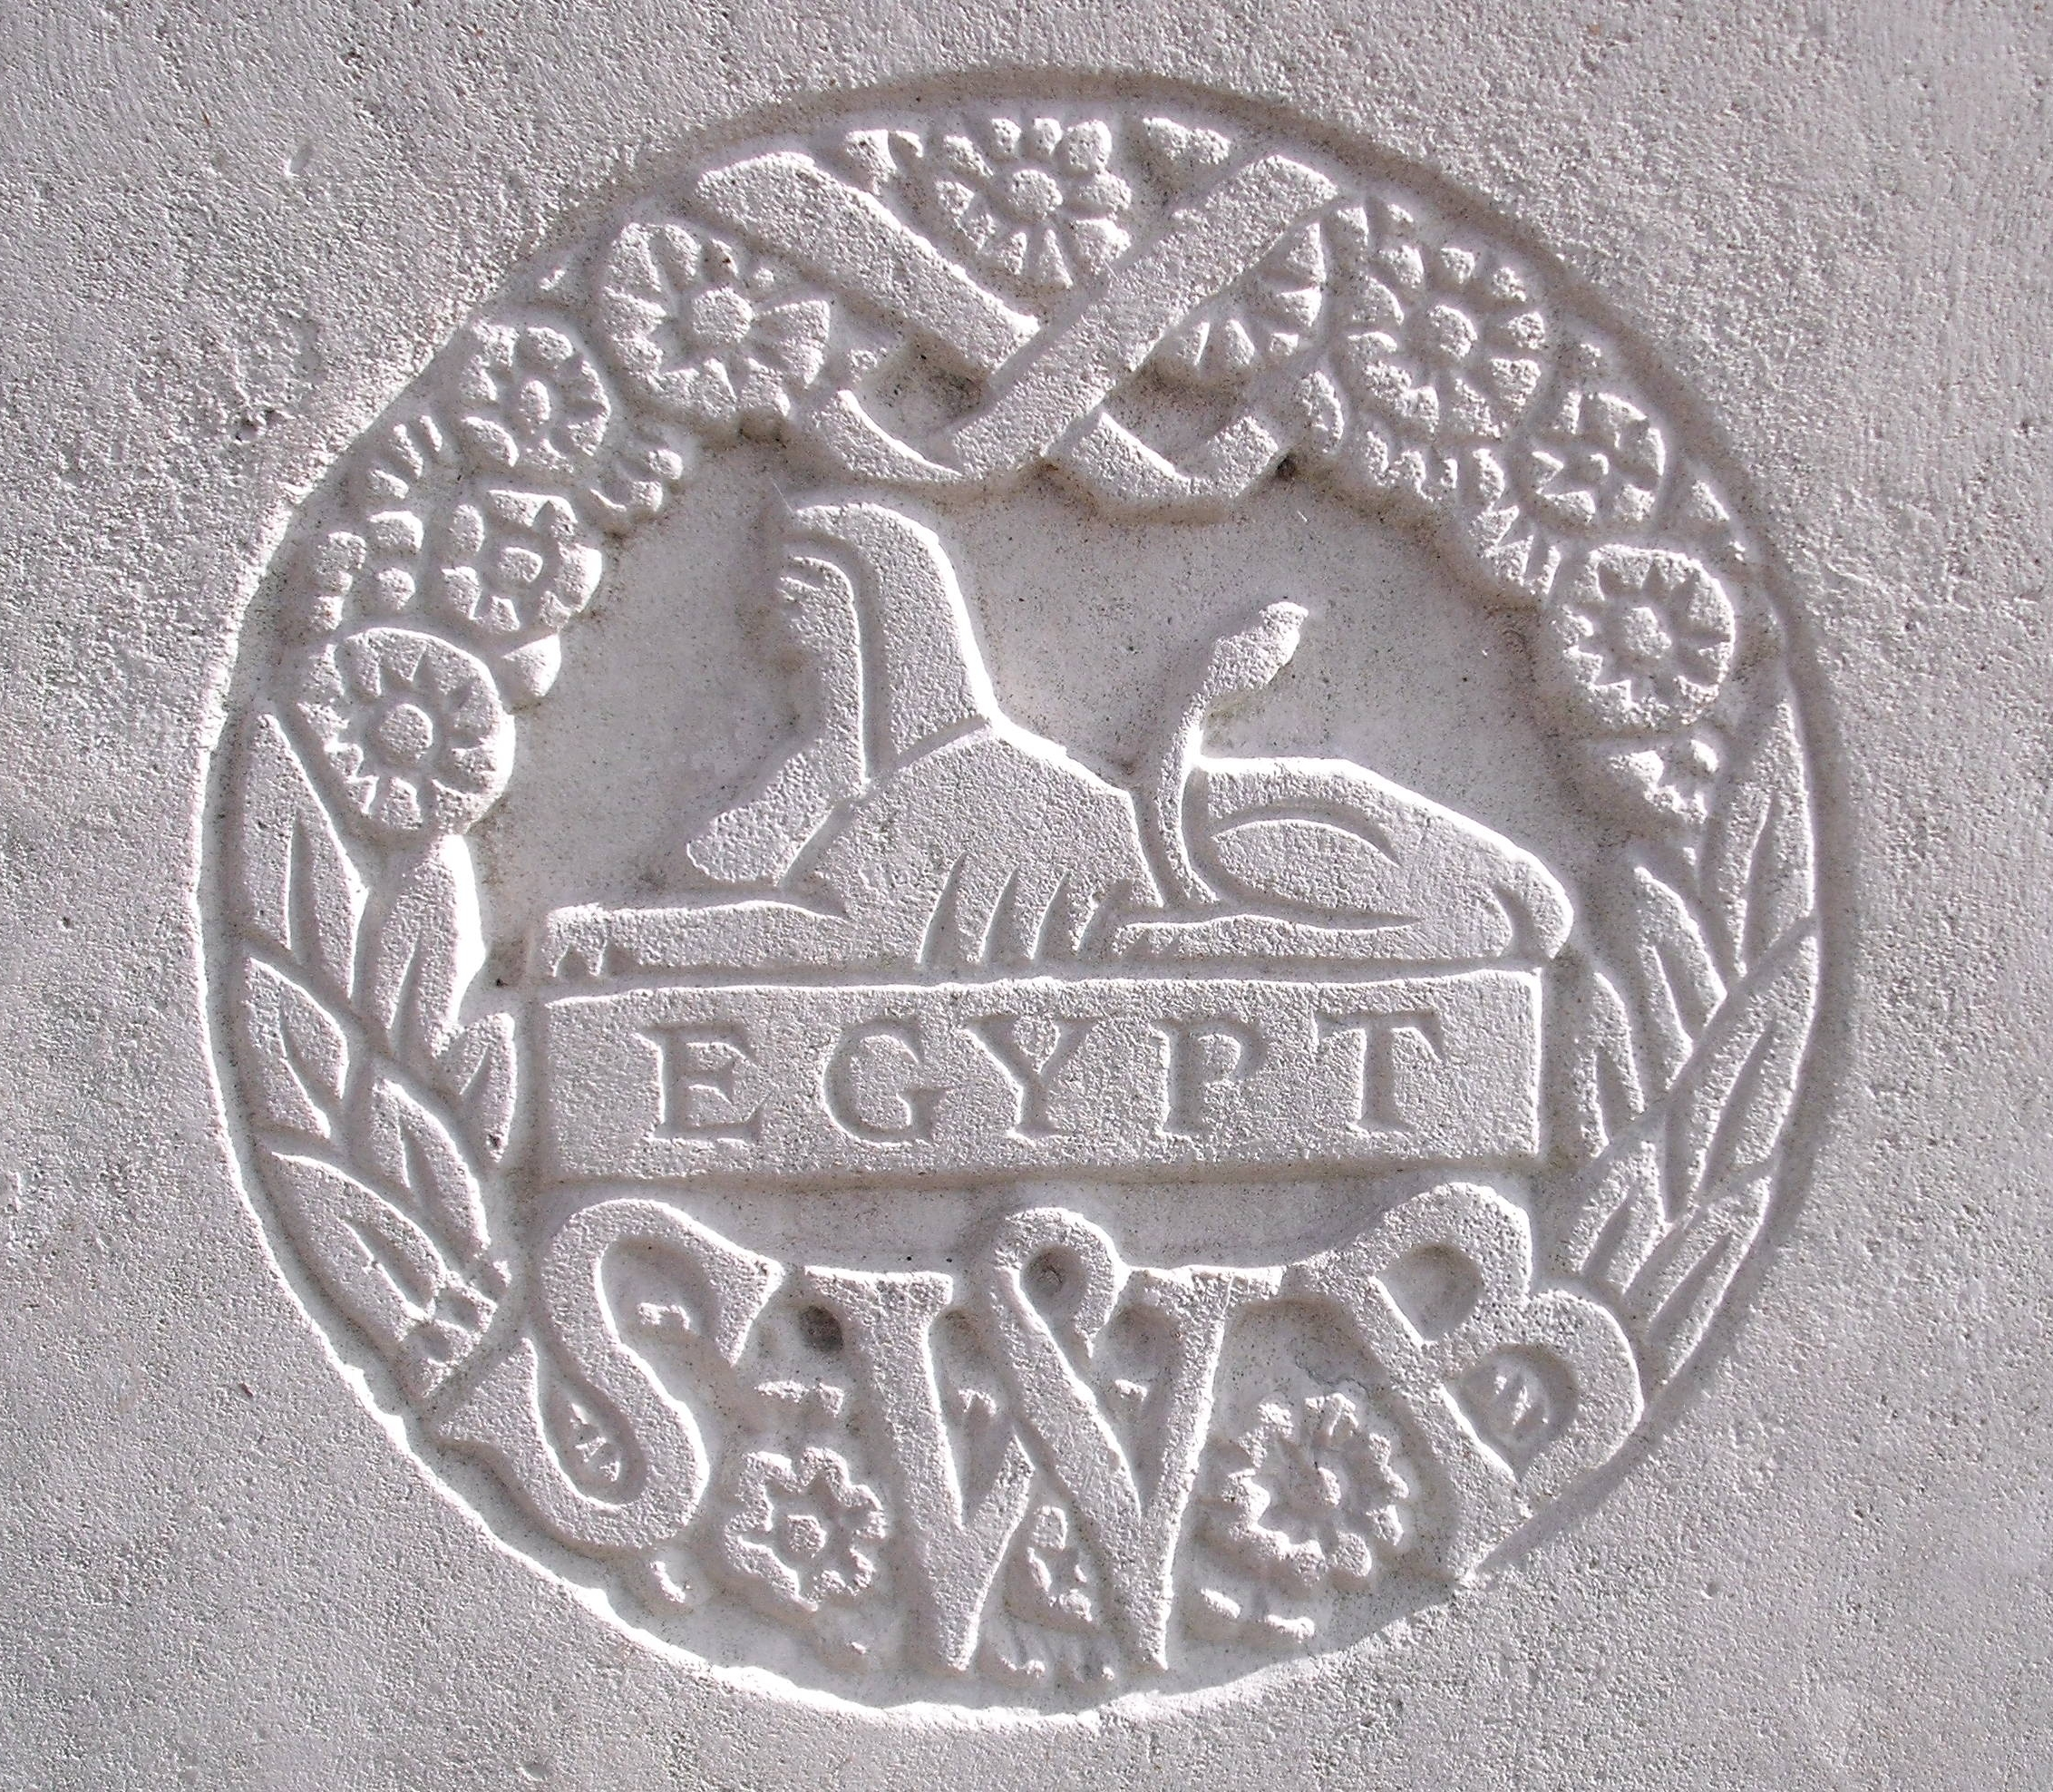 Capbadge of the South Wales Borderers